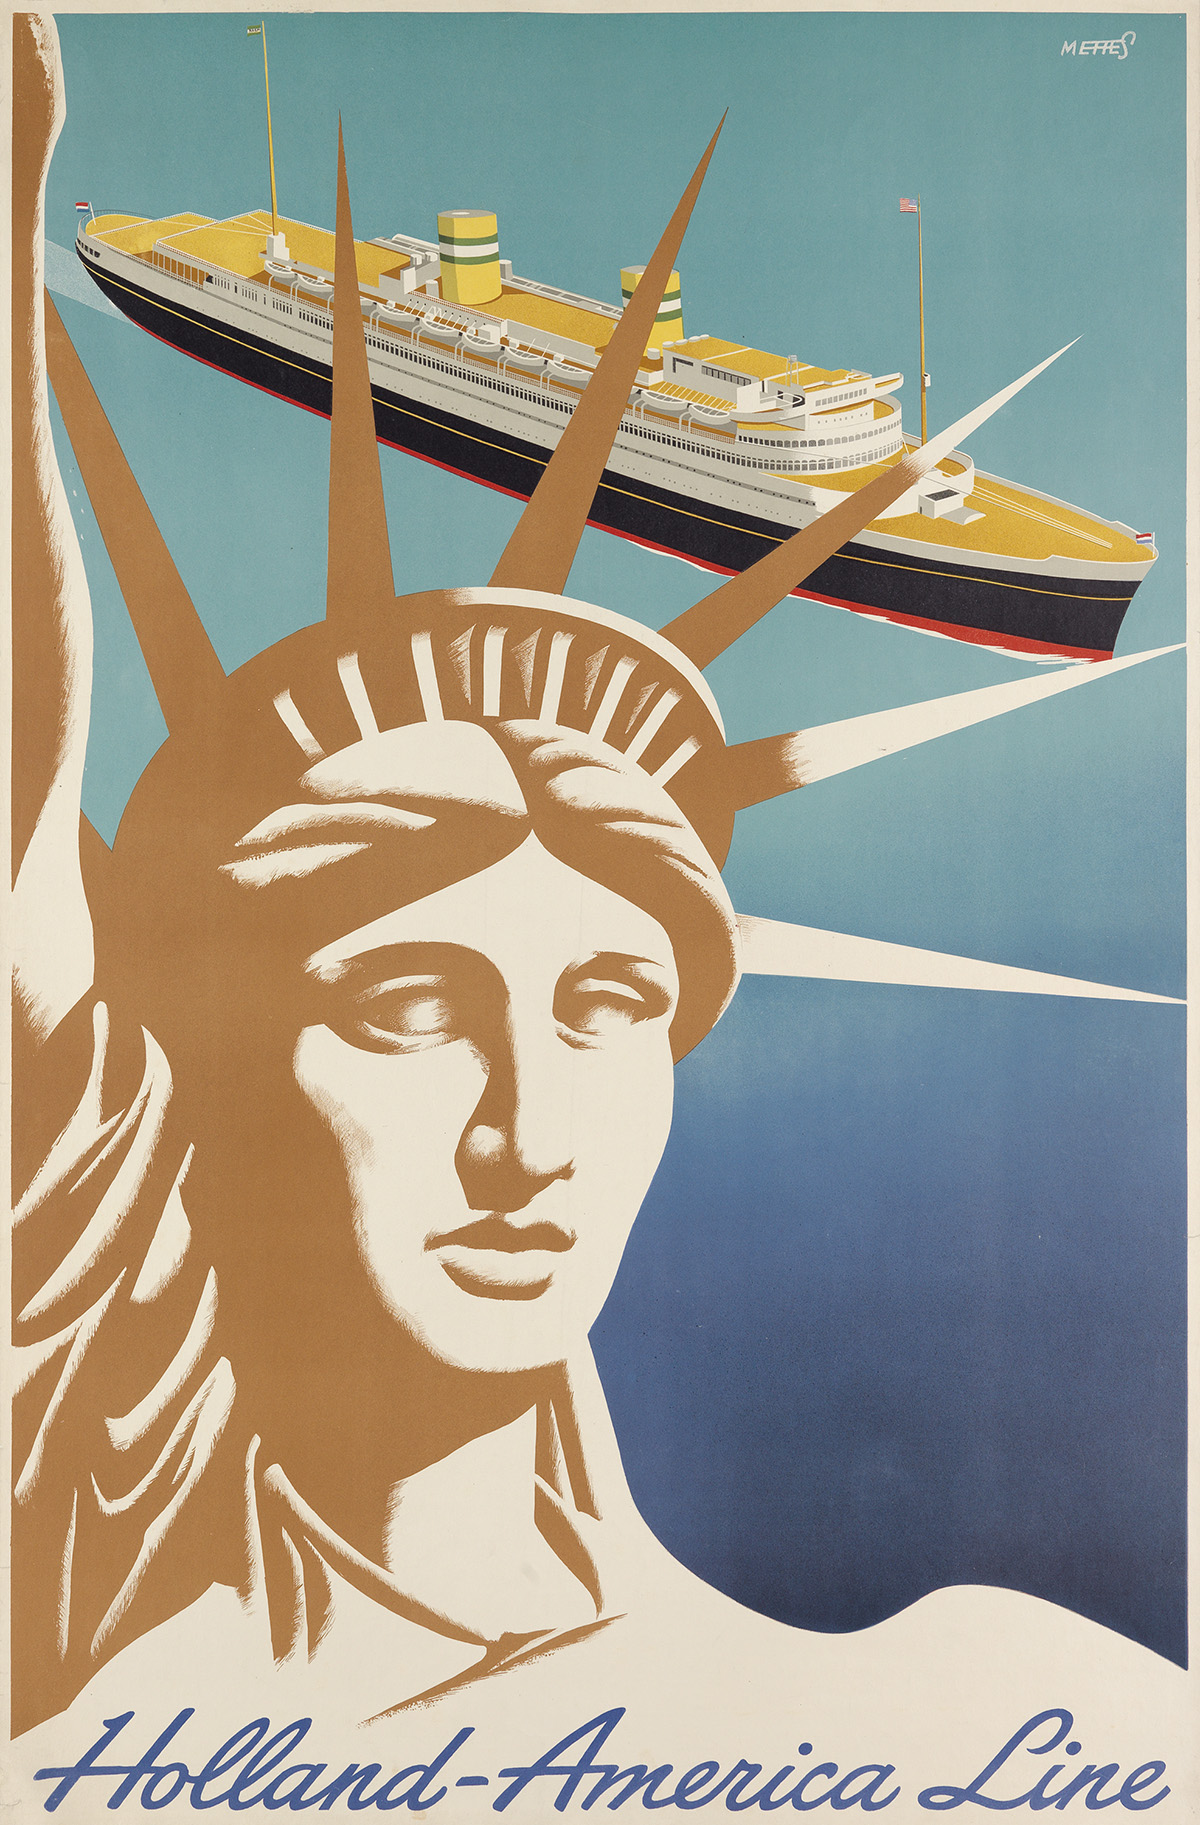 FRANCISCUS-JE-METTES-(1909-1984)-HOLLAND---AMERICA-LINE-1955